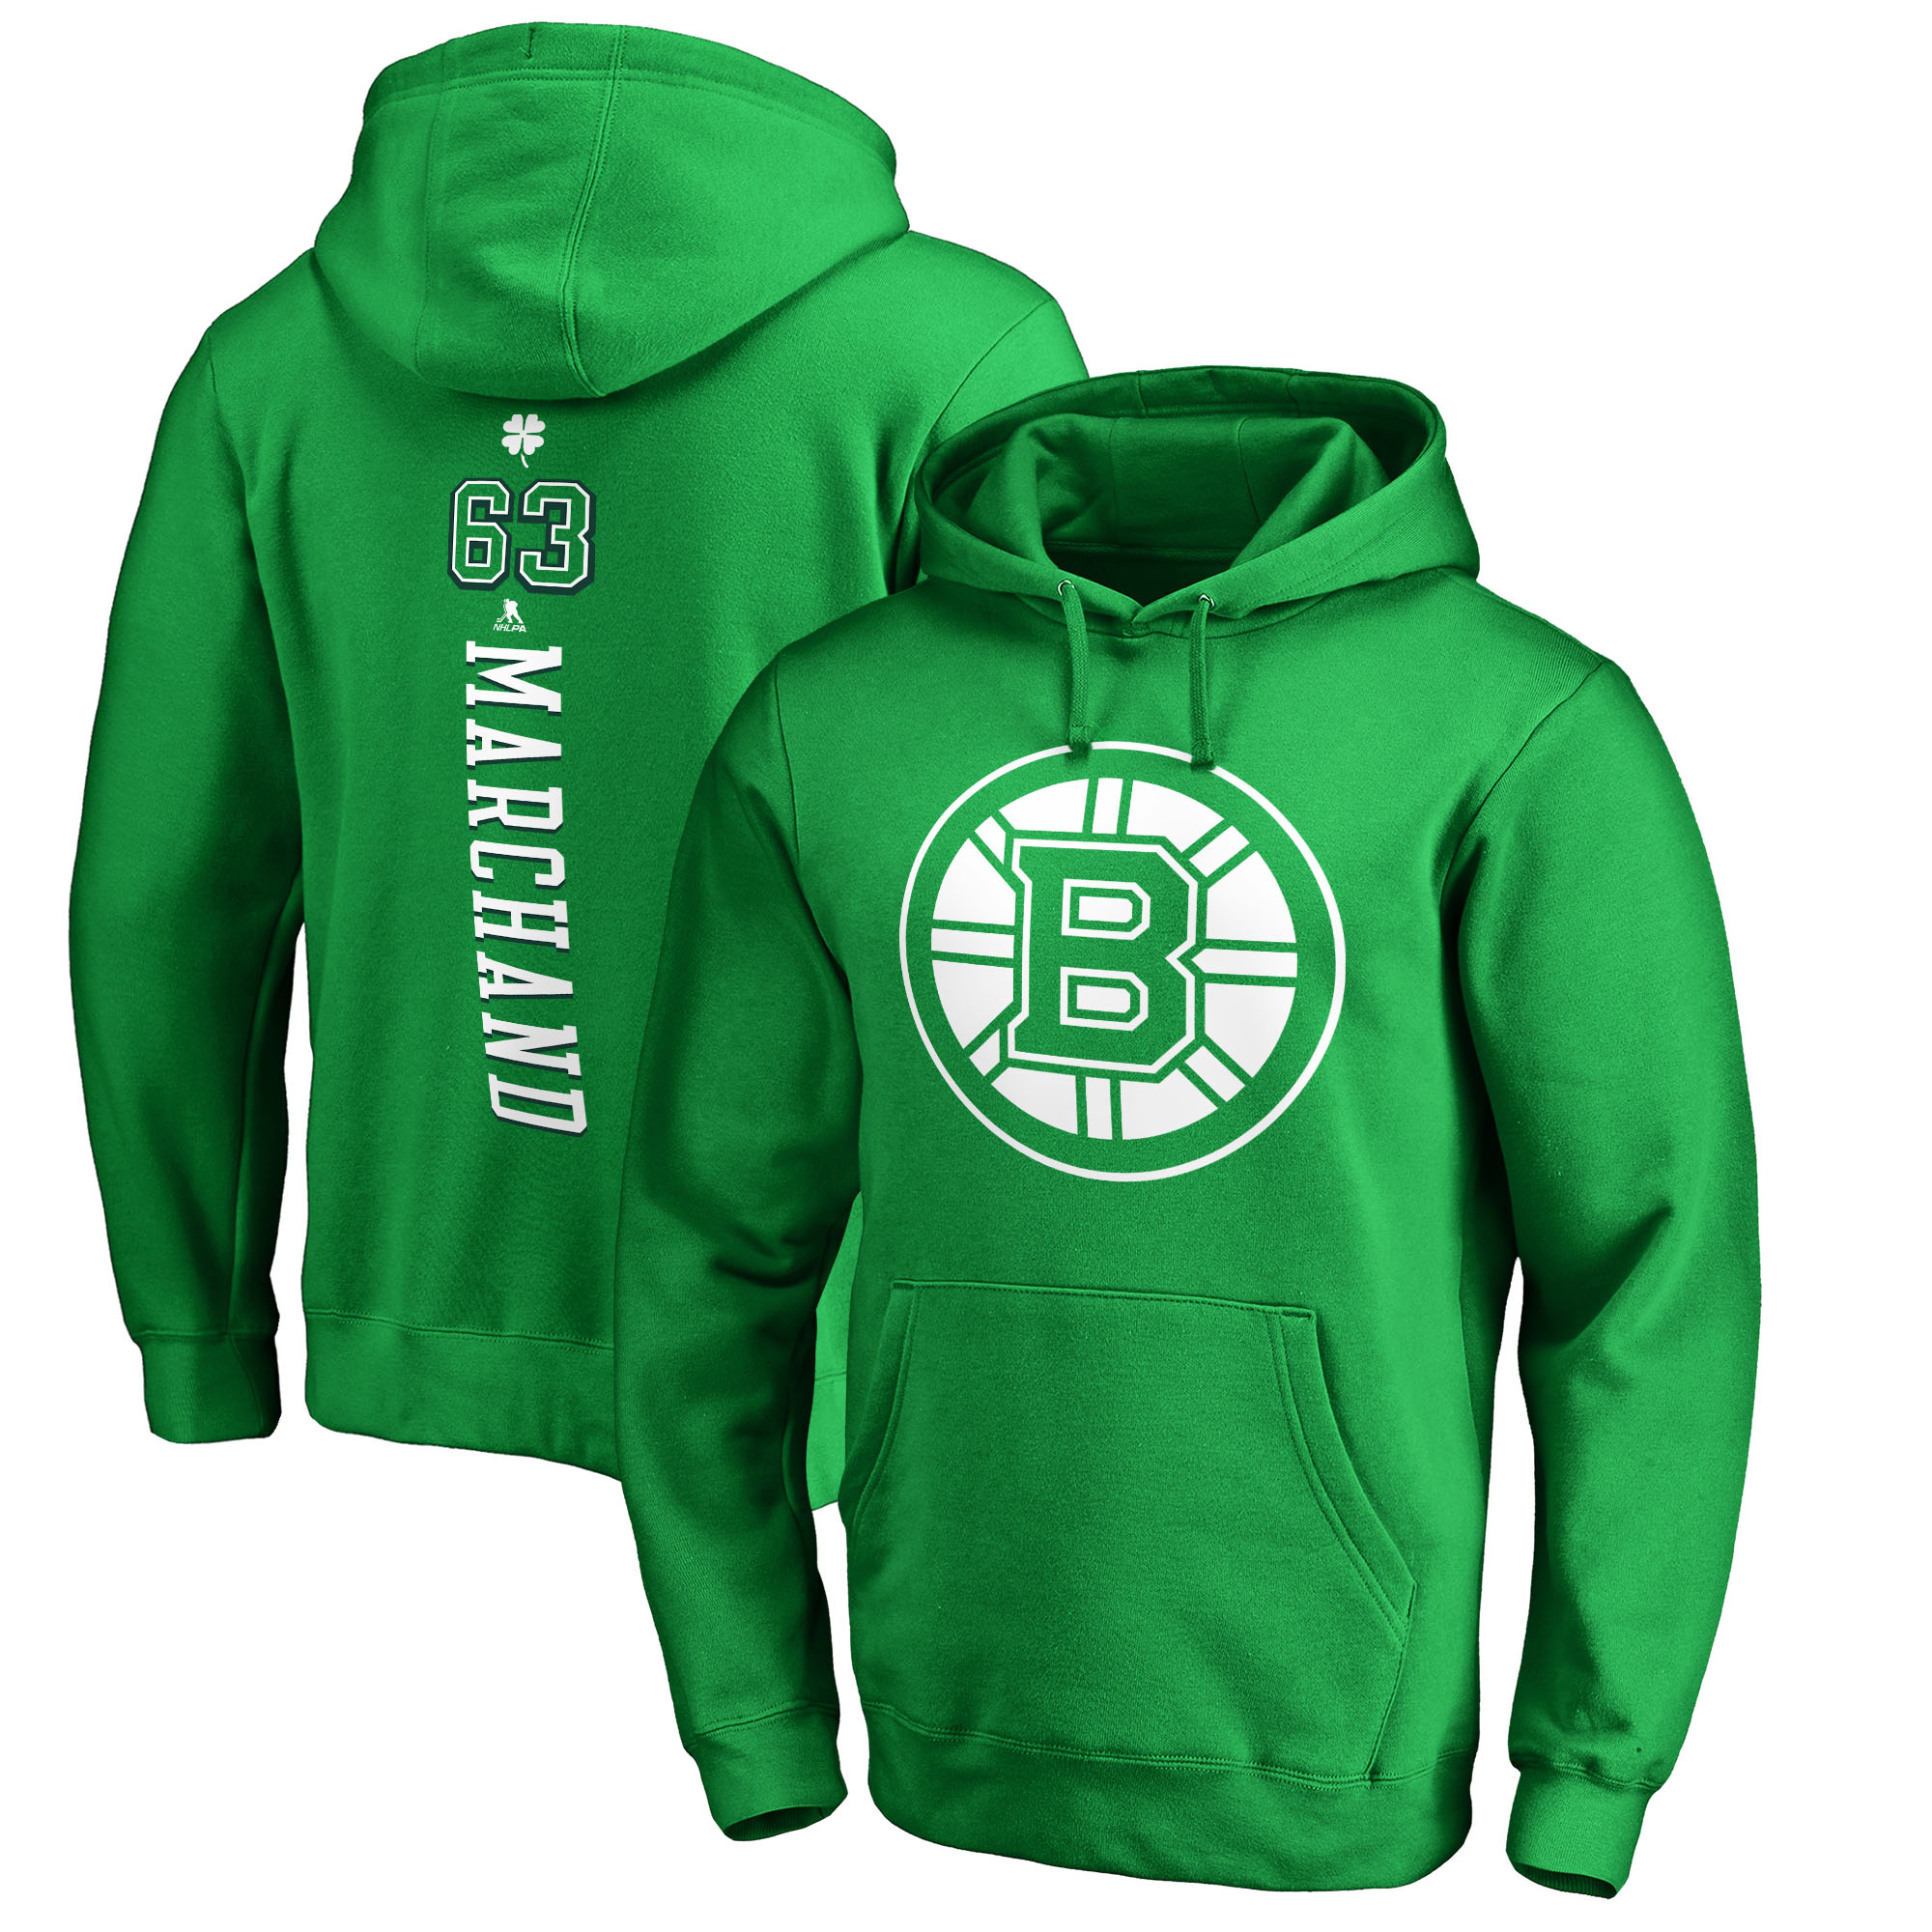 Brad Marchand Boston Bruins Fanatics Branded St. Patrick's Day Backer NHL Hoodie - Kelly Green